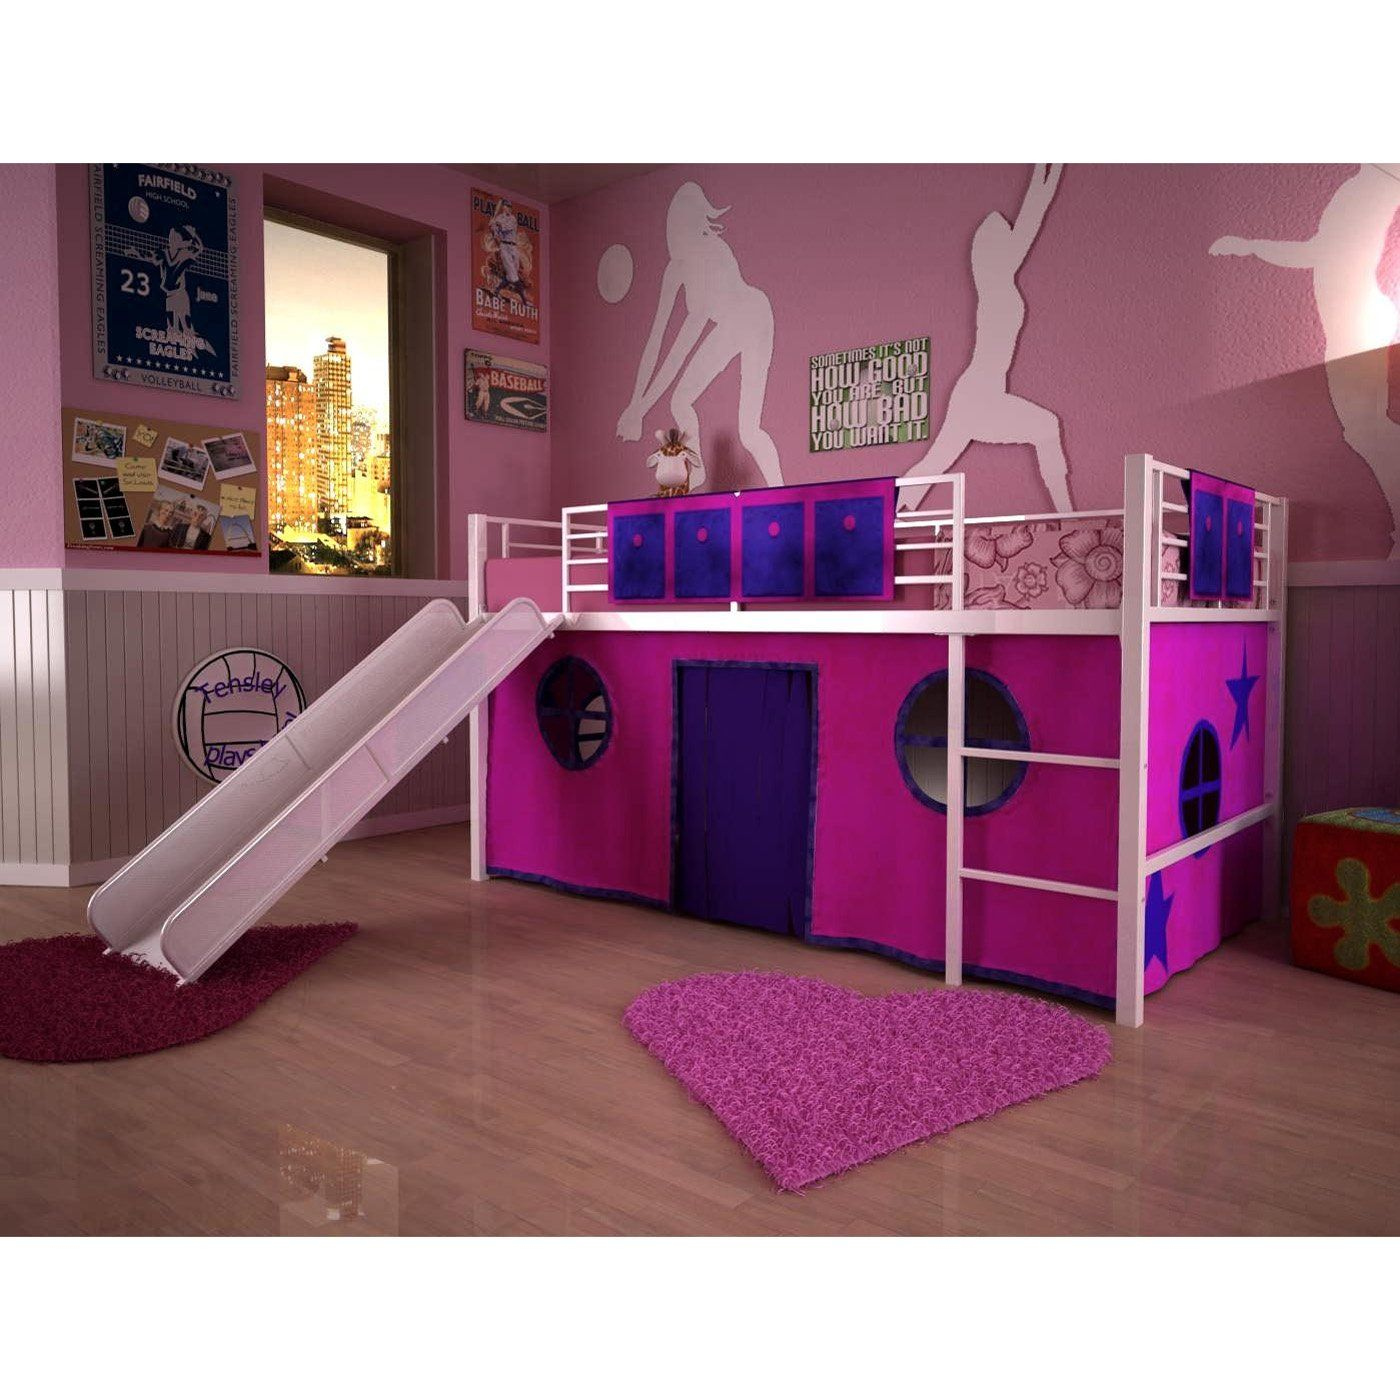 Bunk bed with desk underneath for girls - Pink Loft Beds For Teenagers Loft Beds For